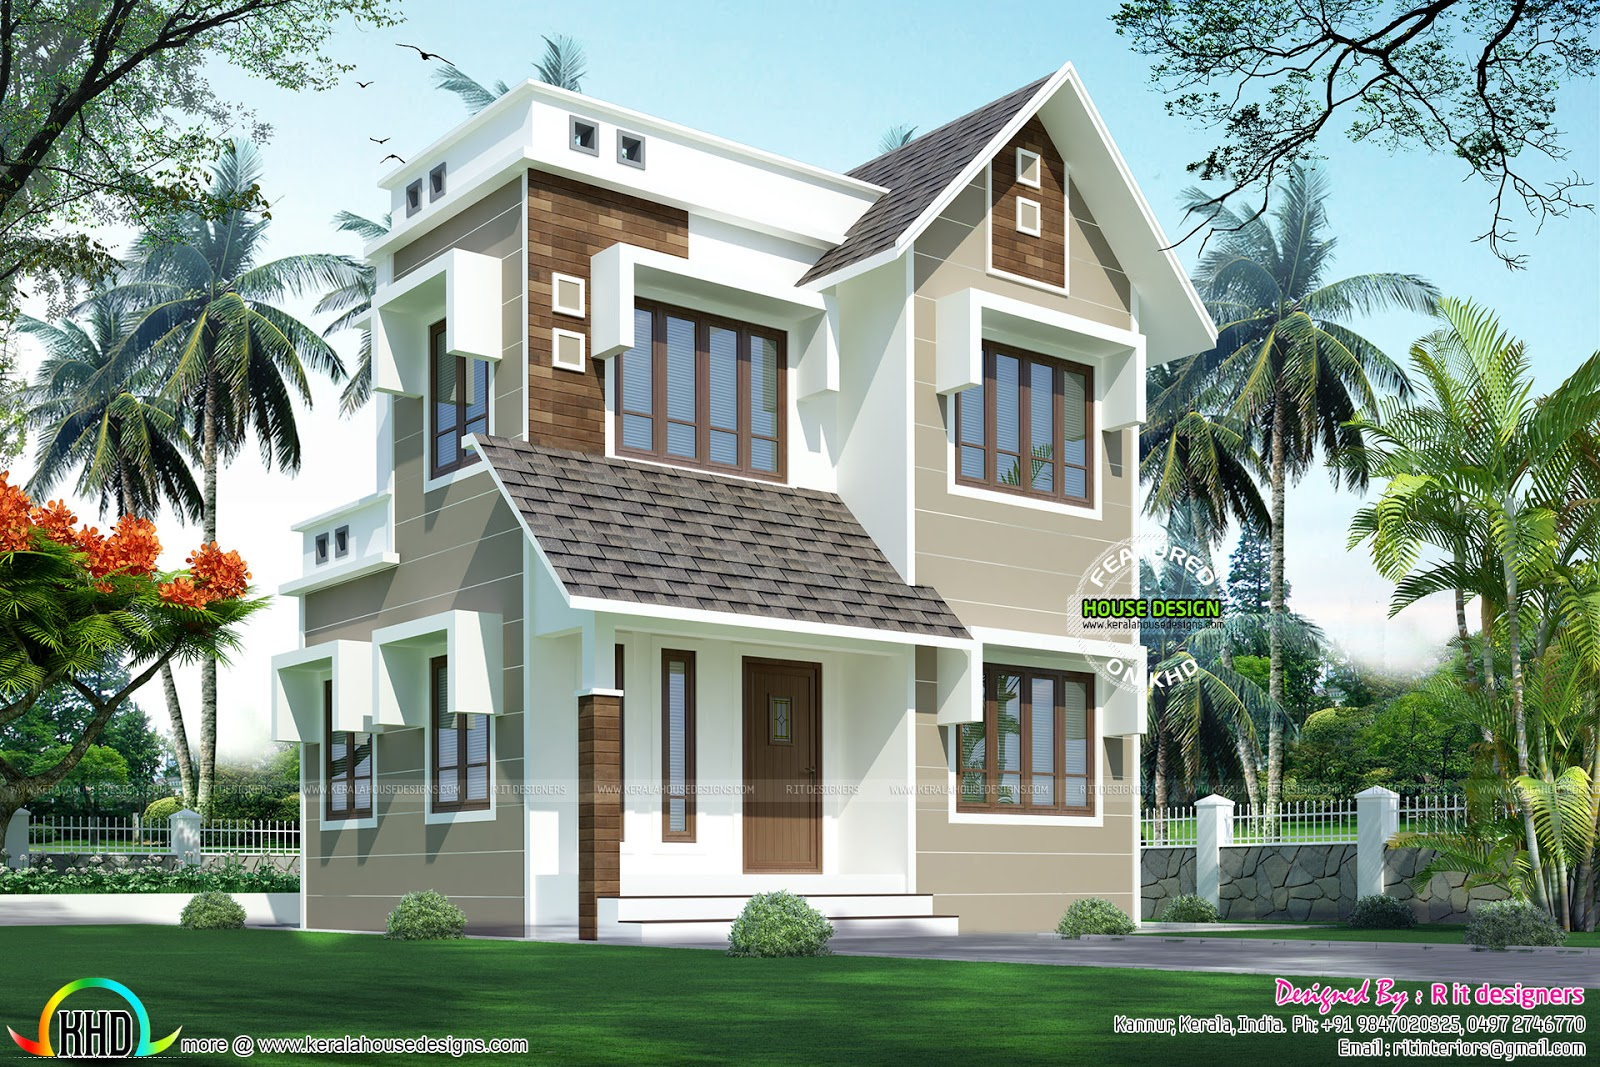 Double storied house 13 Lakhs - Kerala home design and floor plans